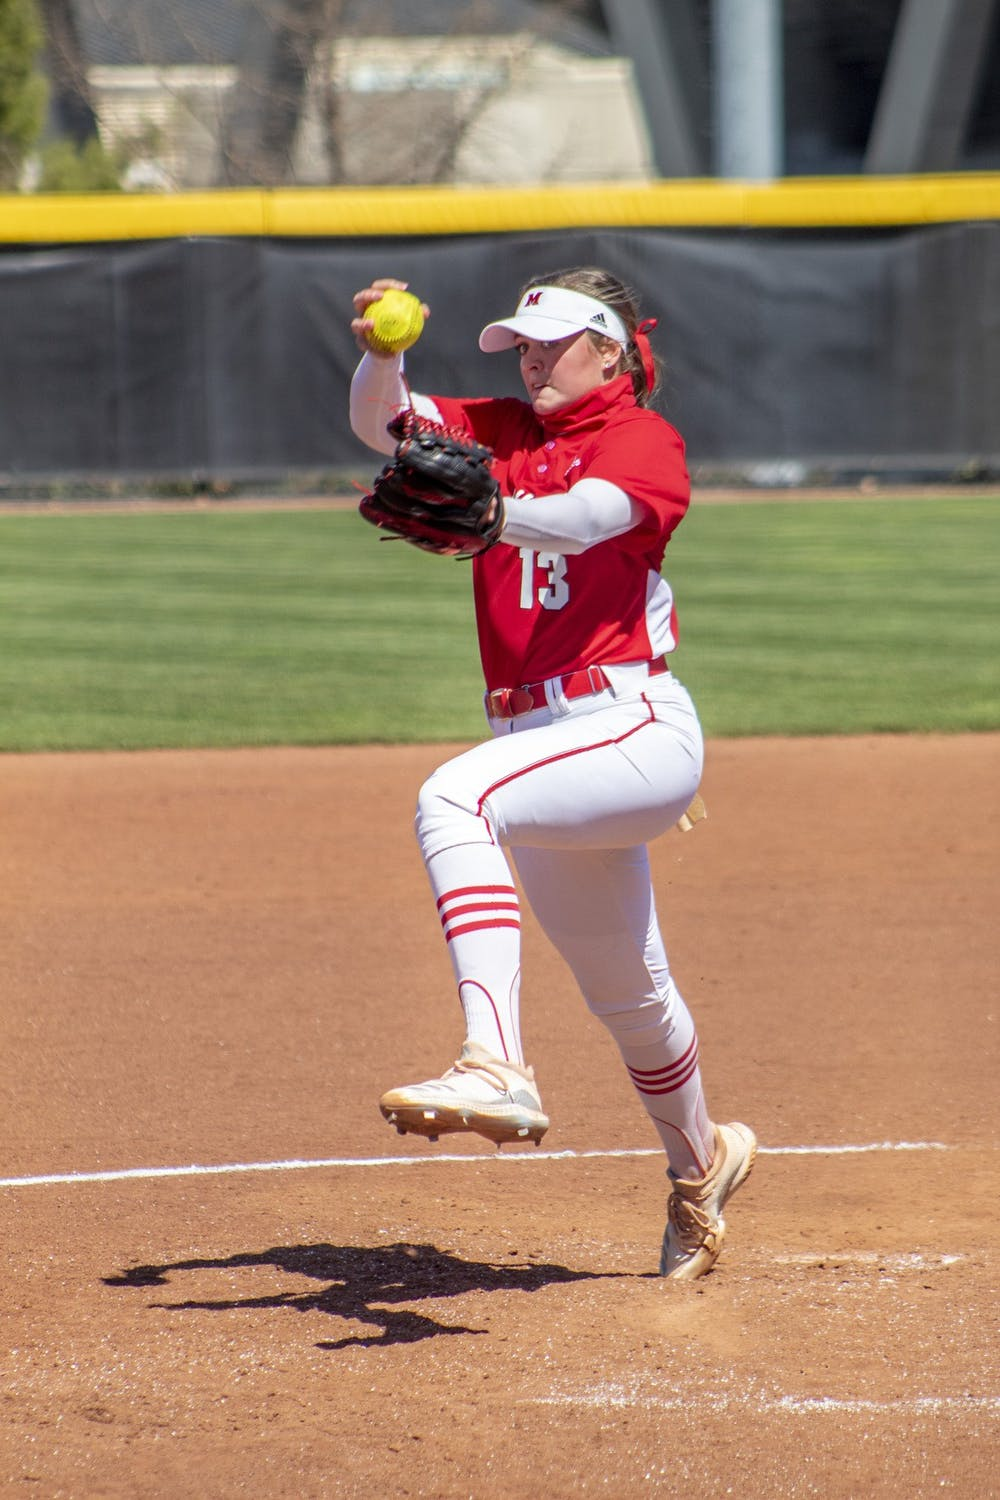 <p>Senior pitcher Courtney Vierstra now has three starts in which no hits were given up this season</p>